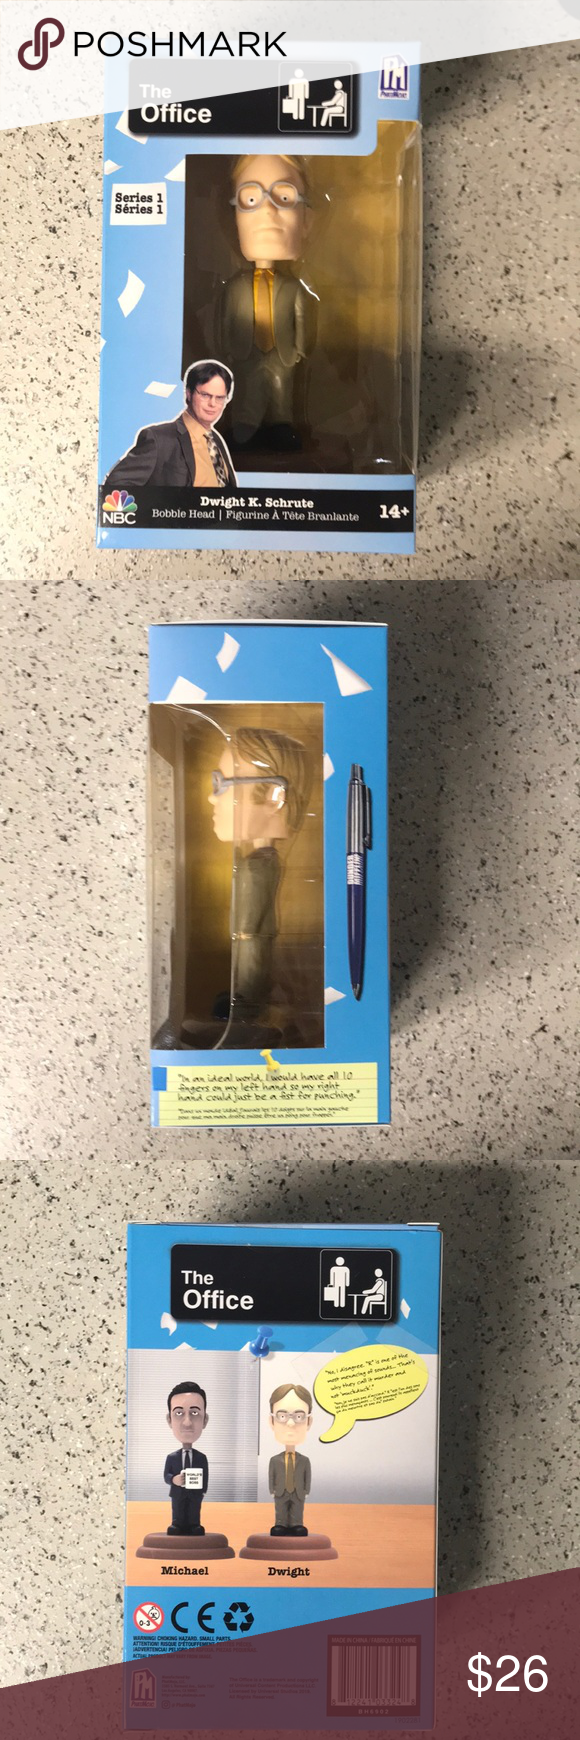 New The Office Dwight Schrute Bobblehead Brand New Mint In Box Phatmojo Other Dwight Schrute Bobblehead Dwight Schrute The Office